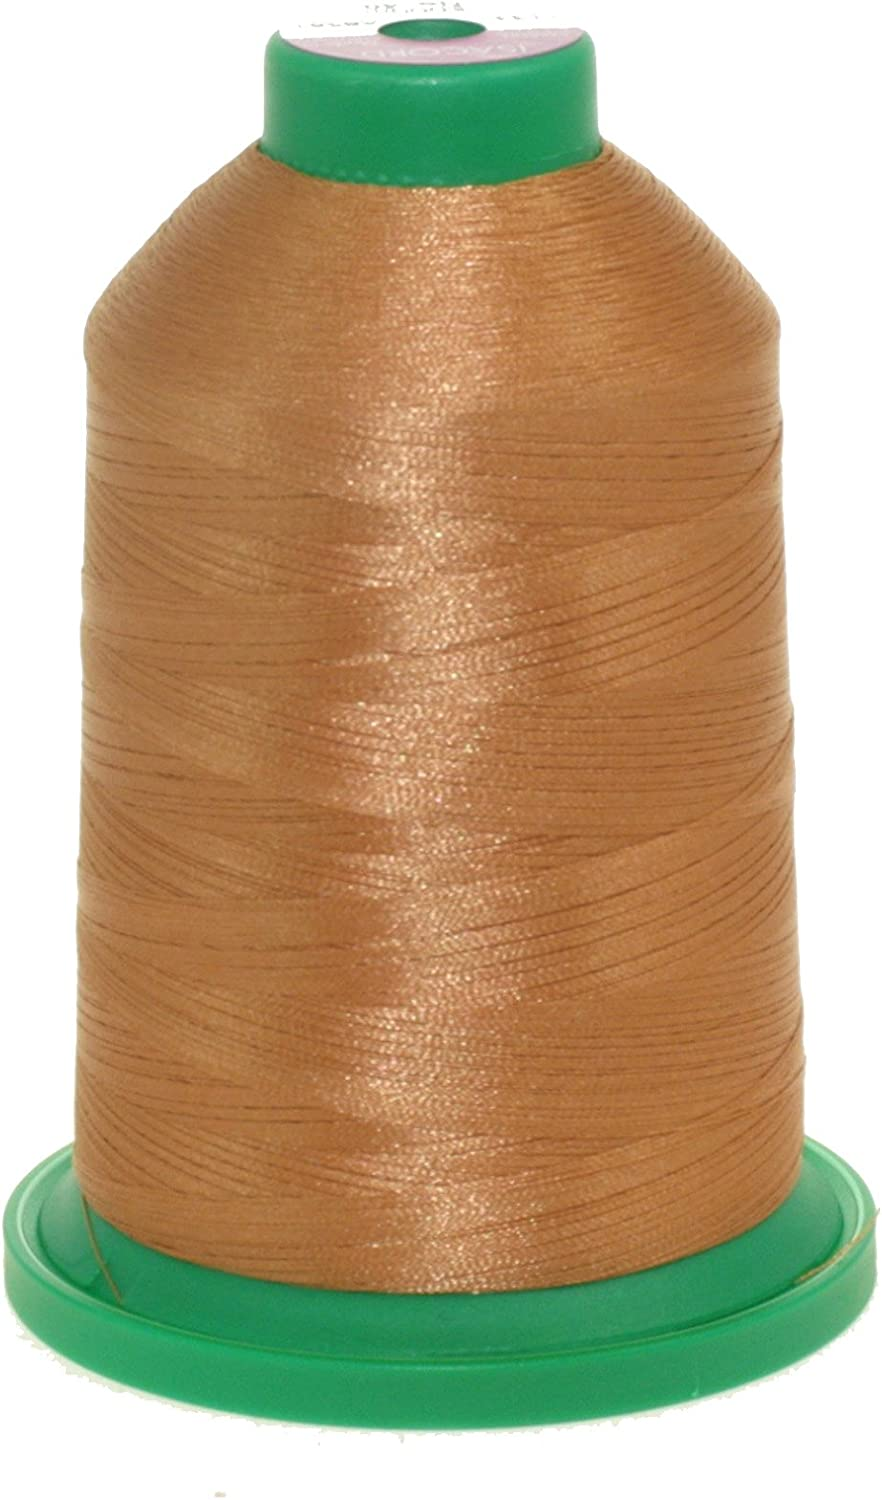 1030-1172 Isacord Embroidery Thread 5000m 1030